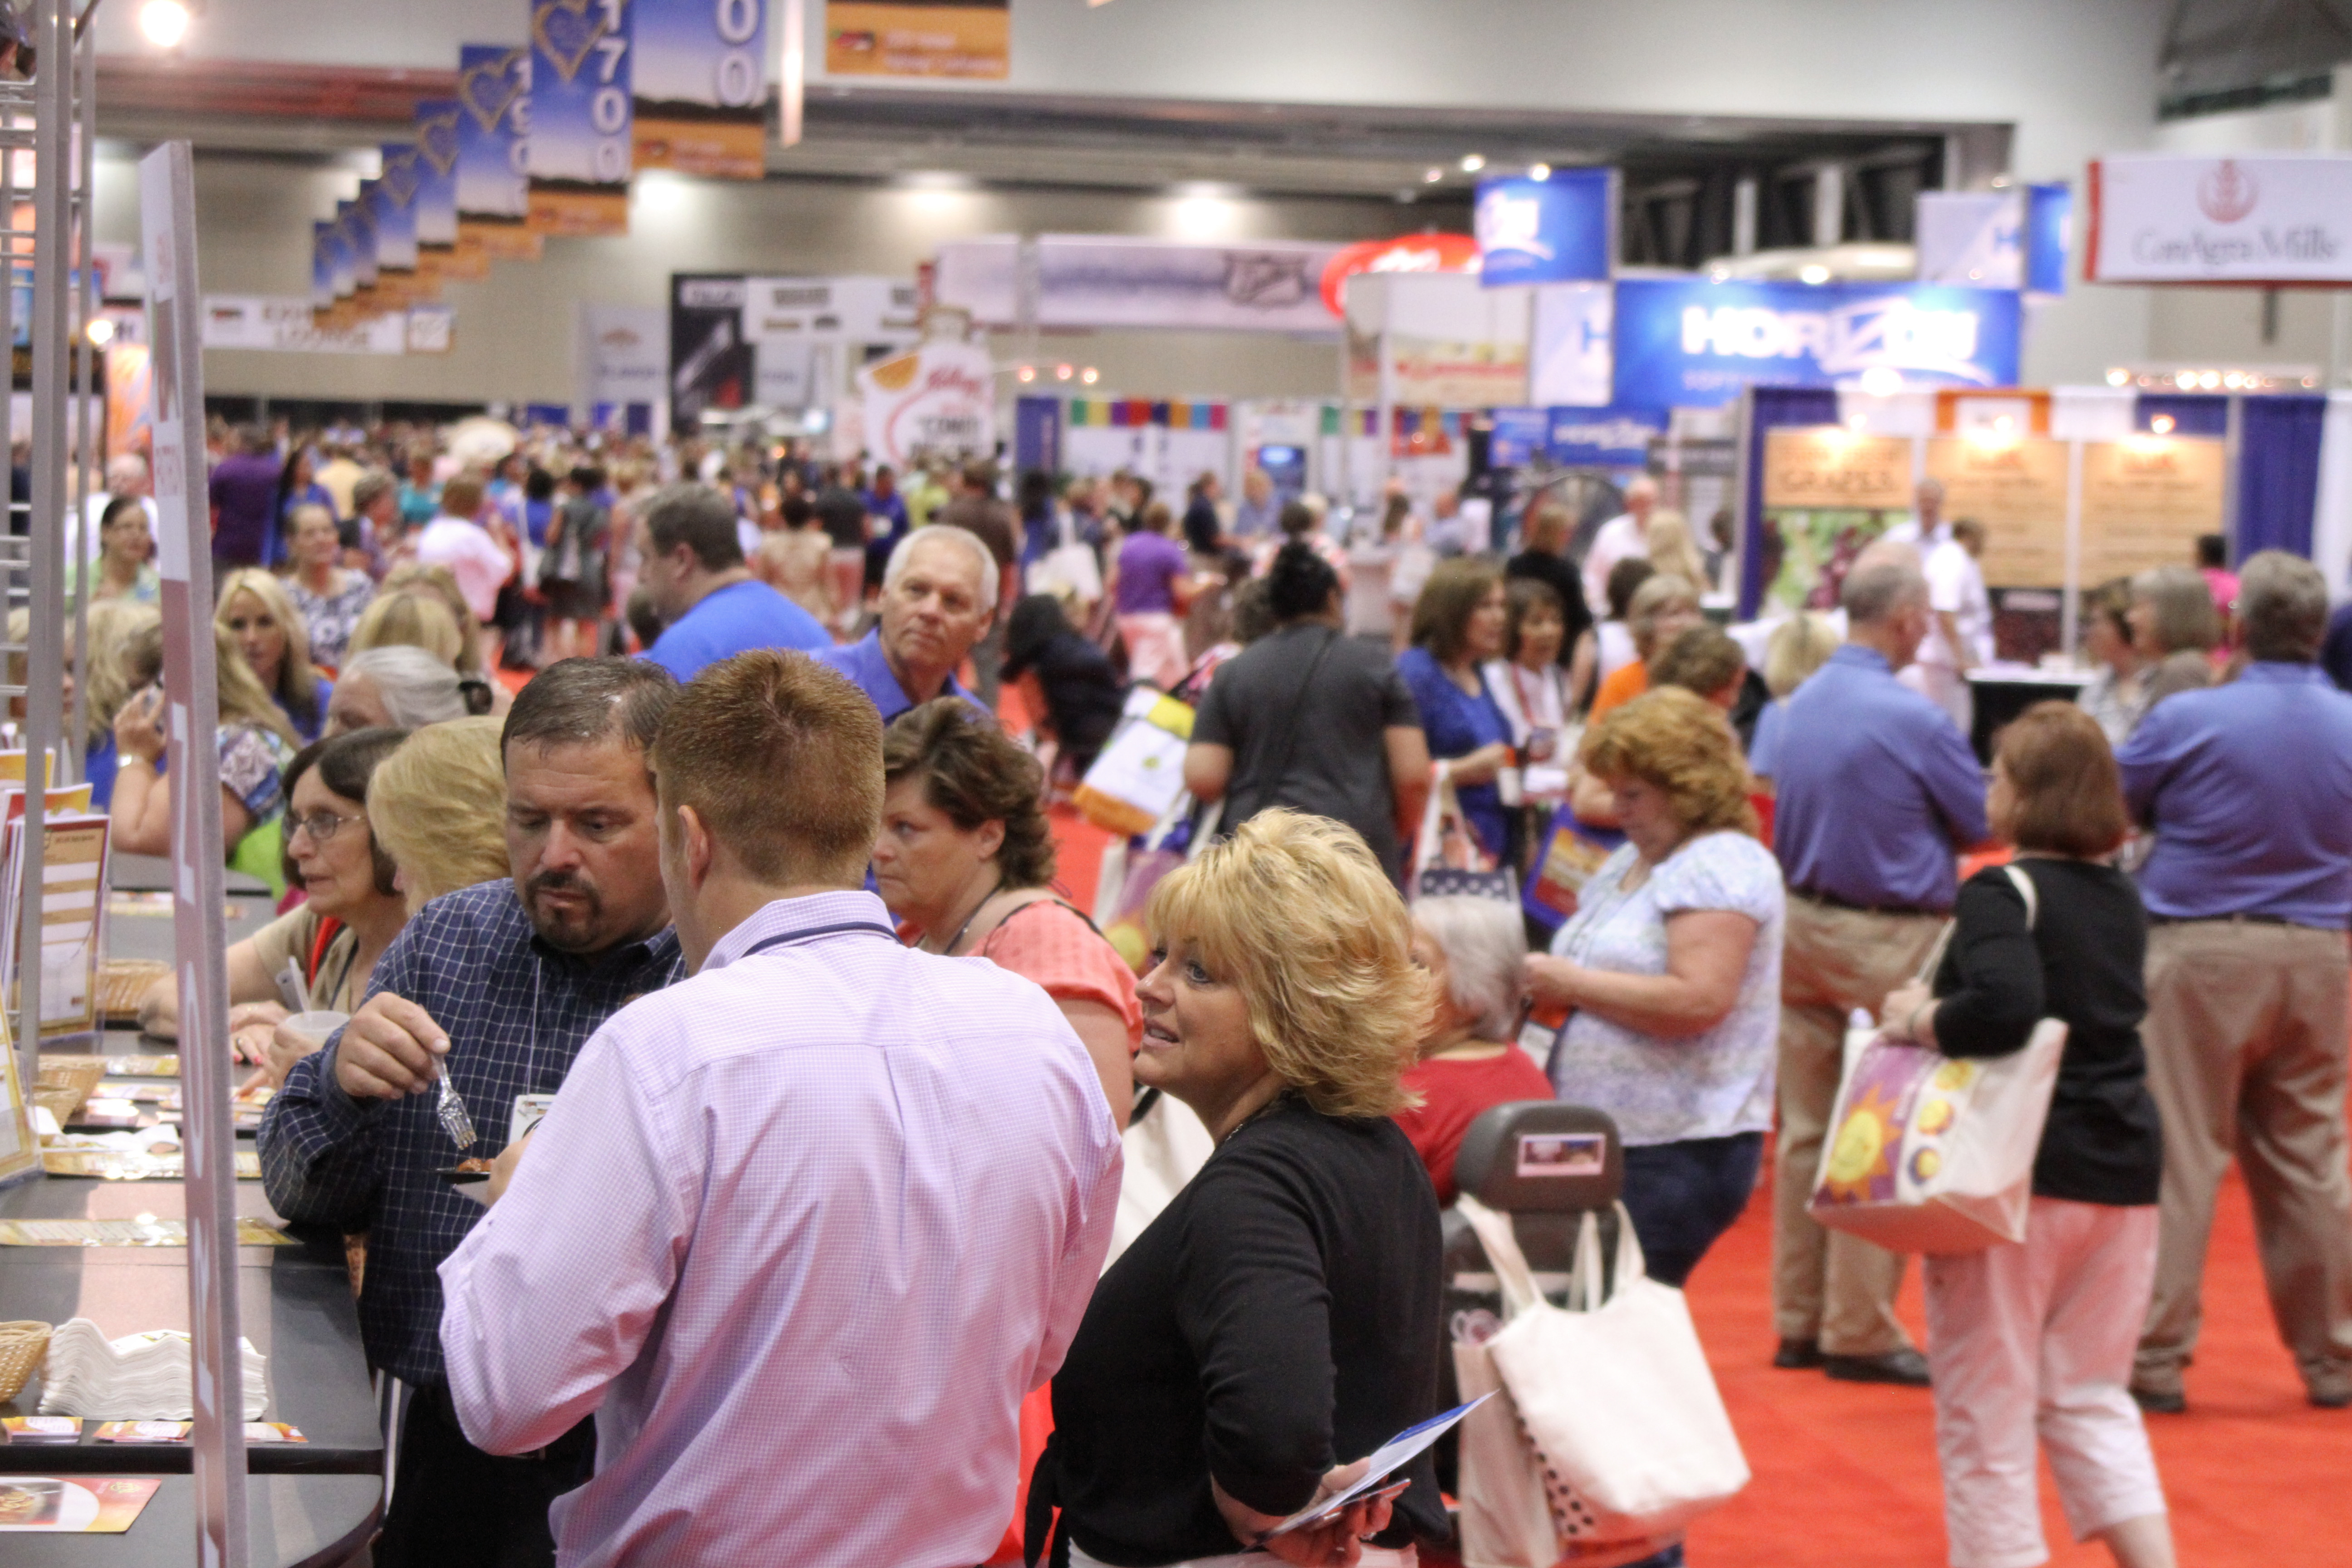 slide 2 exhibit hall